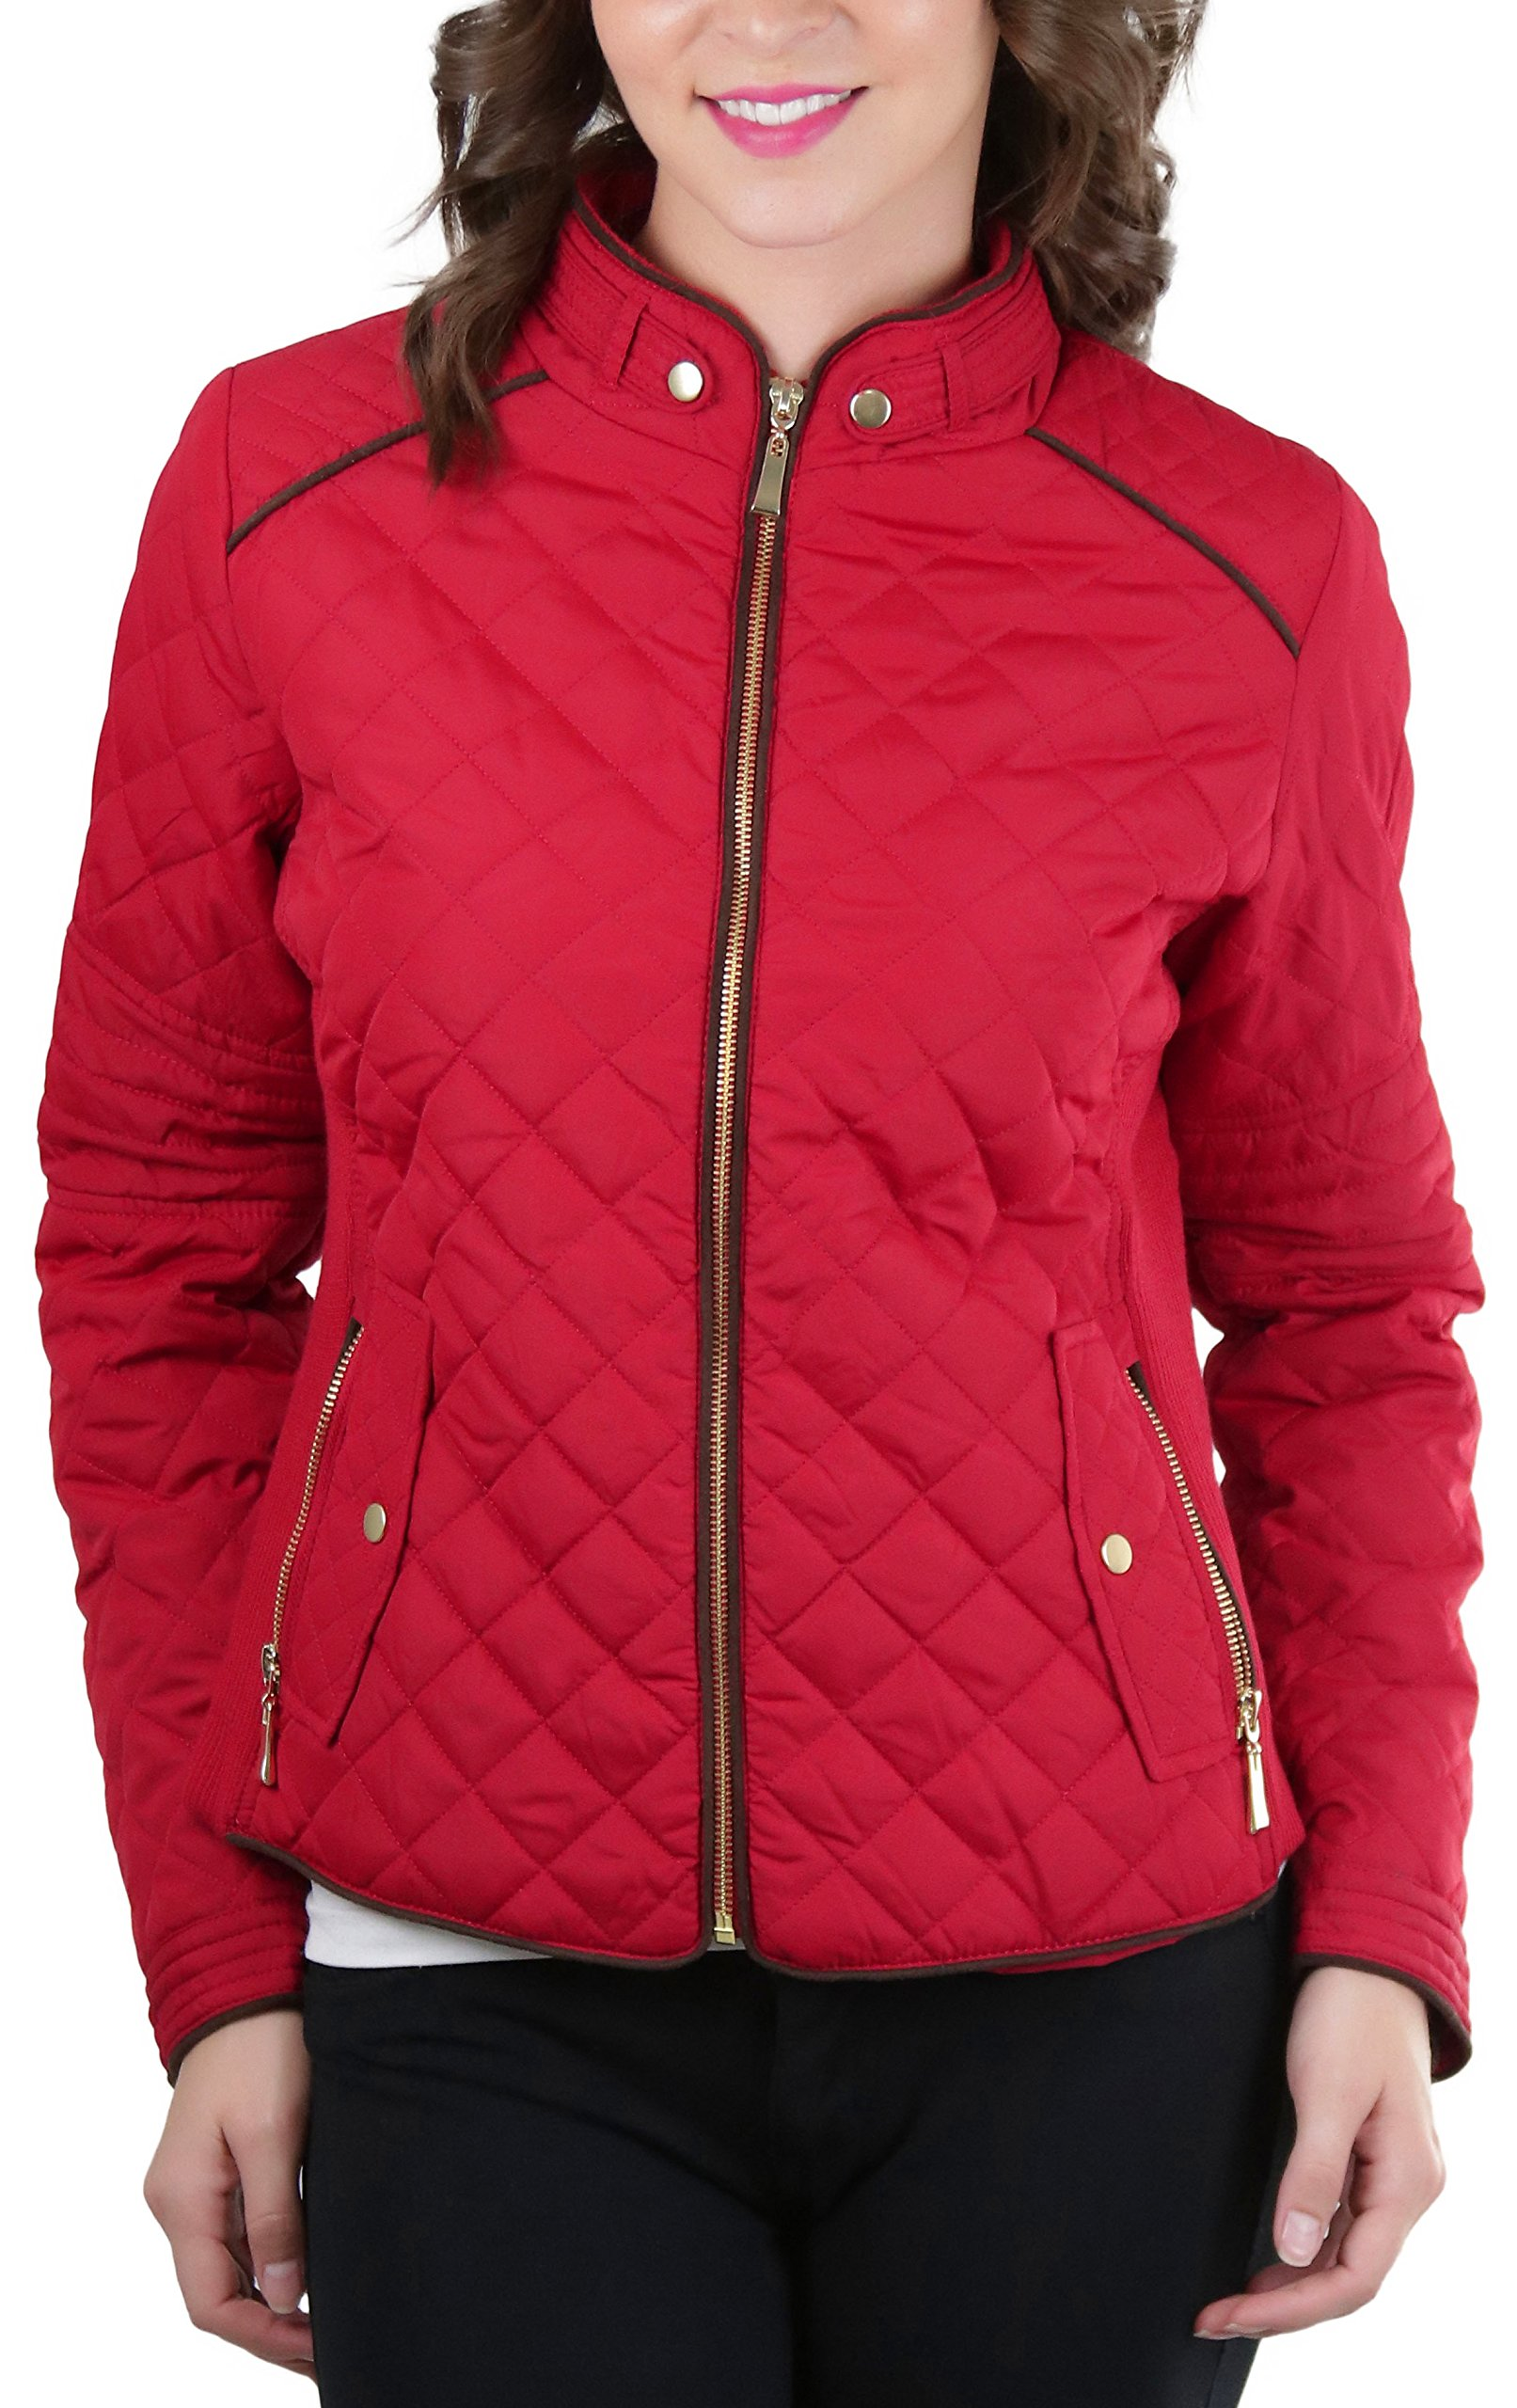 ToBeInStyle Women's Quilted Padded Jacket Suede Piping - Red - Small